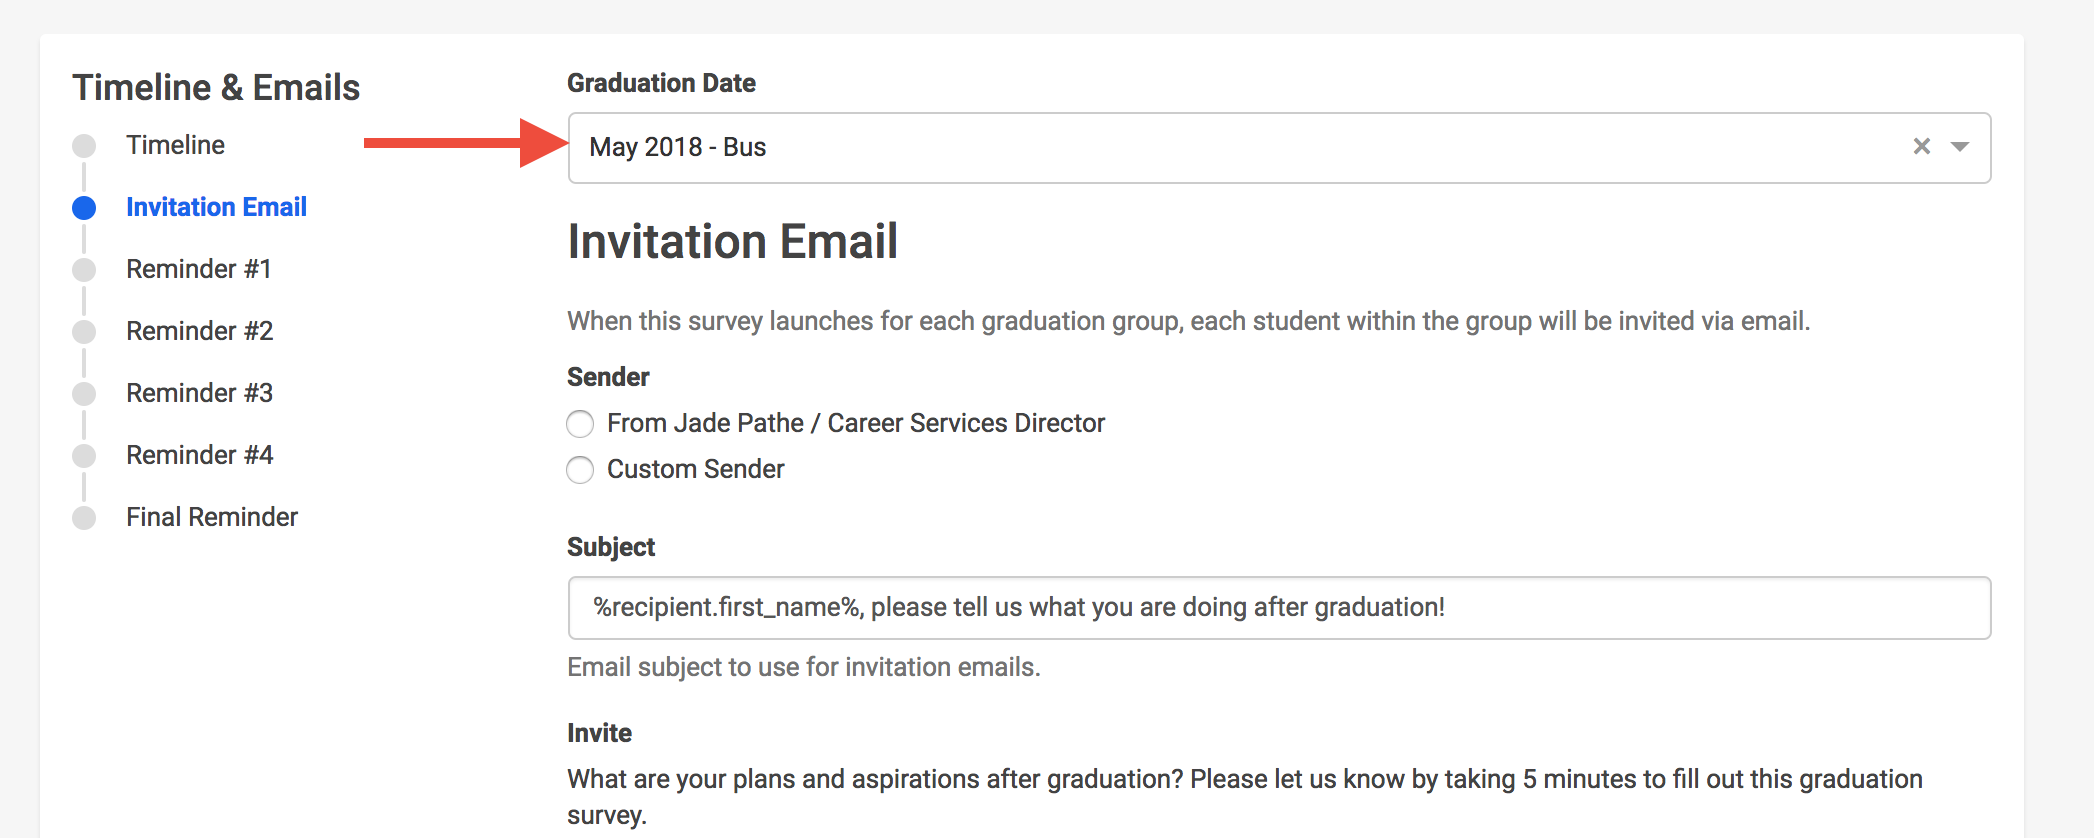 Change_the_graduation_group_for_each_one.png